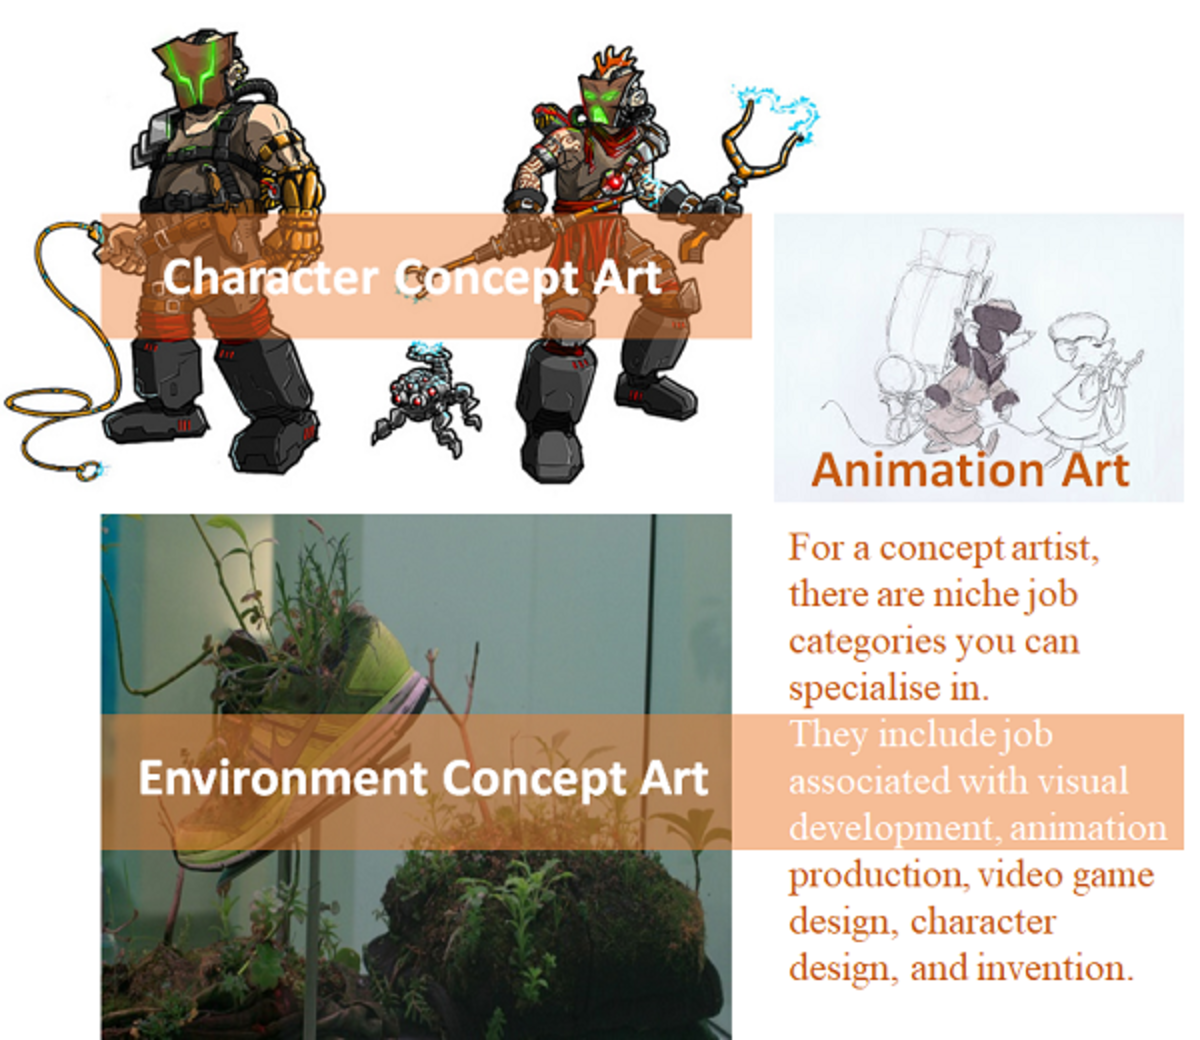 Top 15 Concept Artist Jobs - Game Art and Design Industry